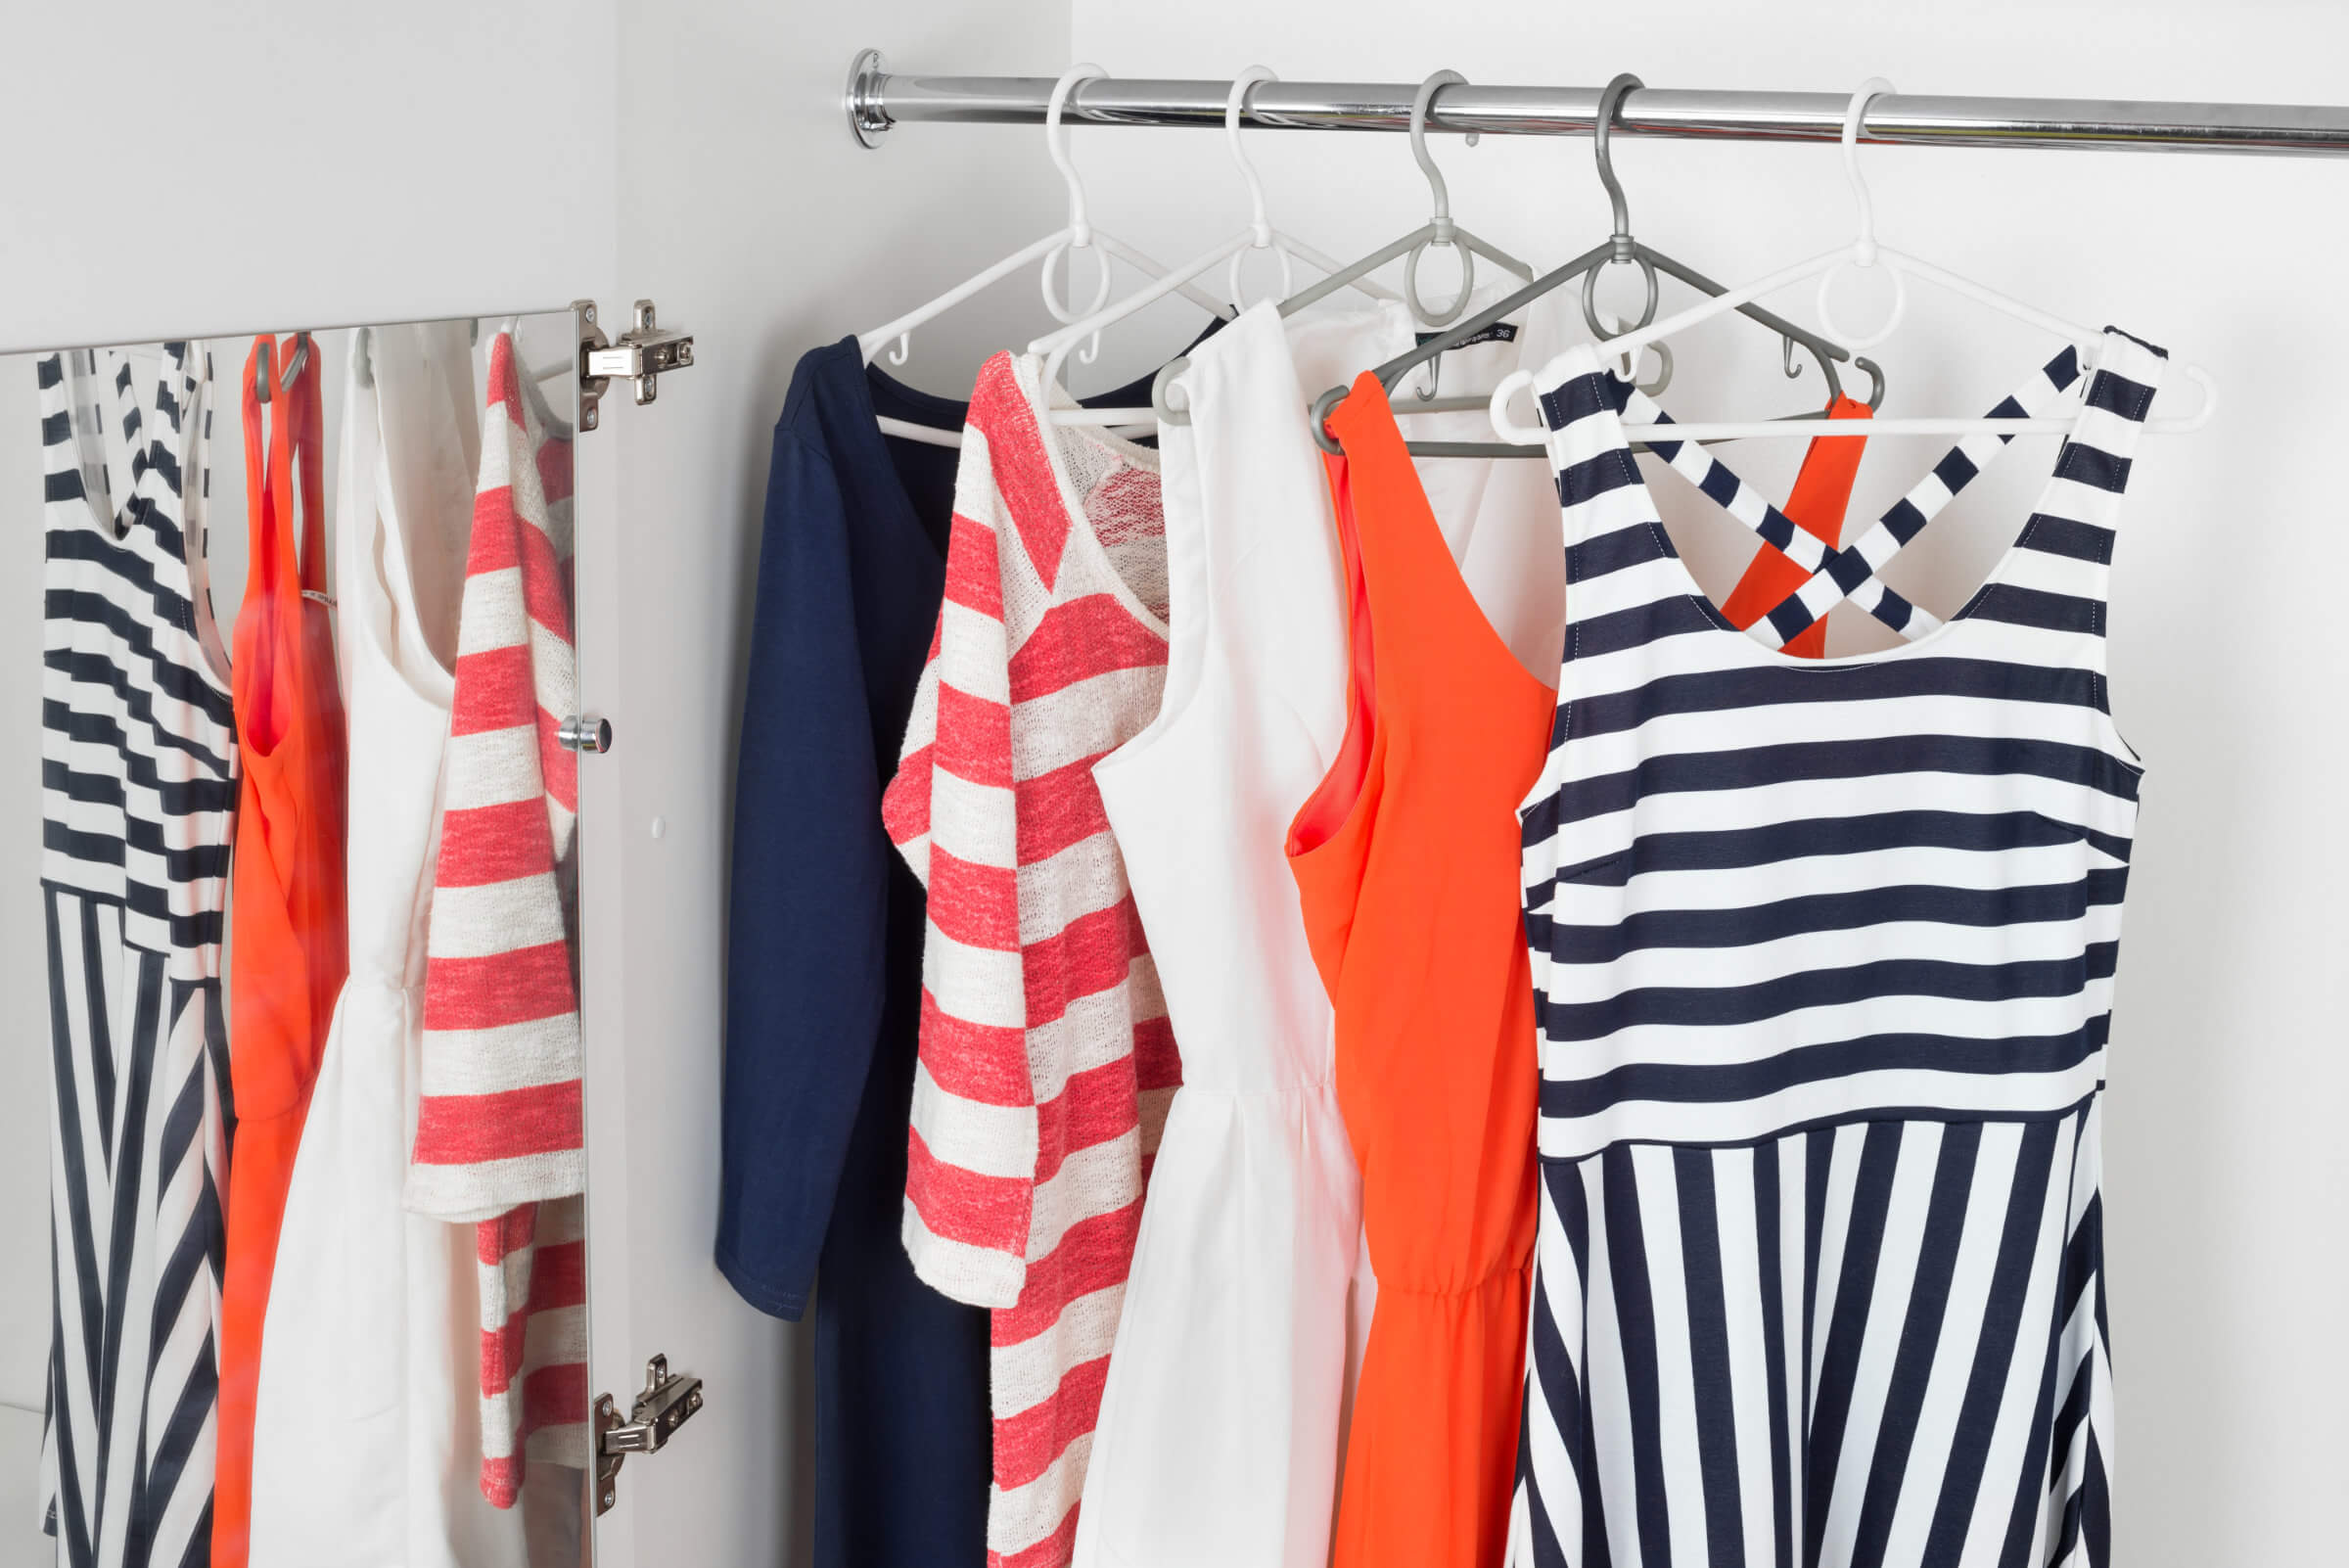 Colourful Dresses And Striped Women's Clothing Hanging On A Rail